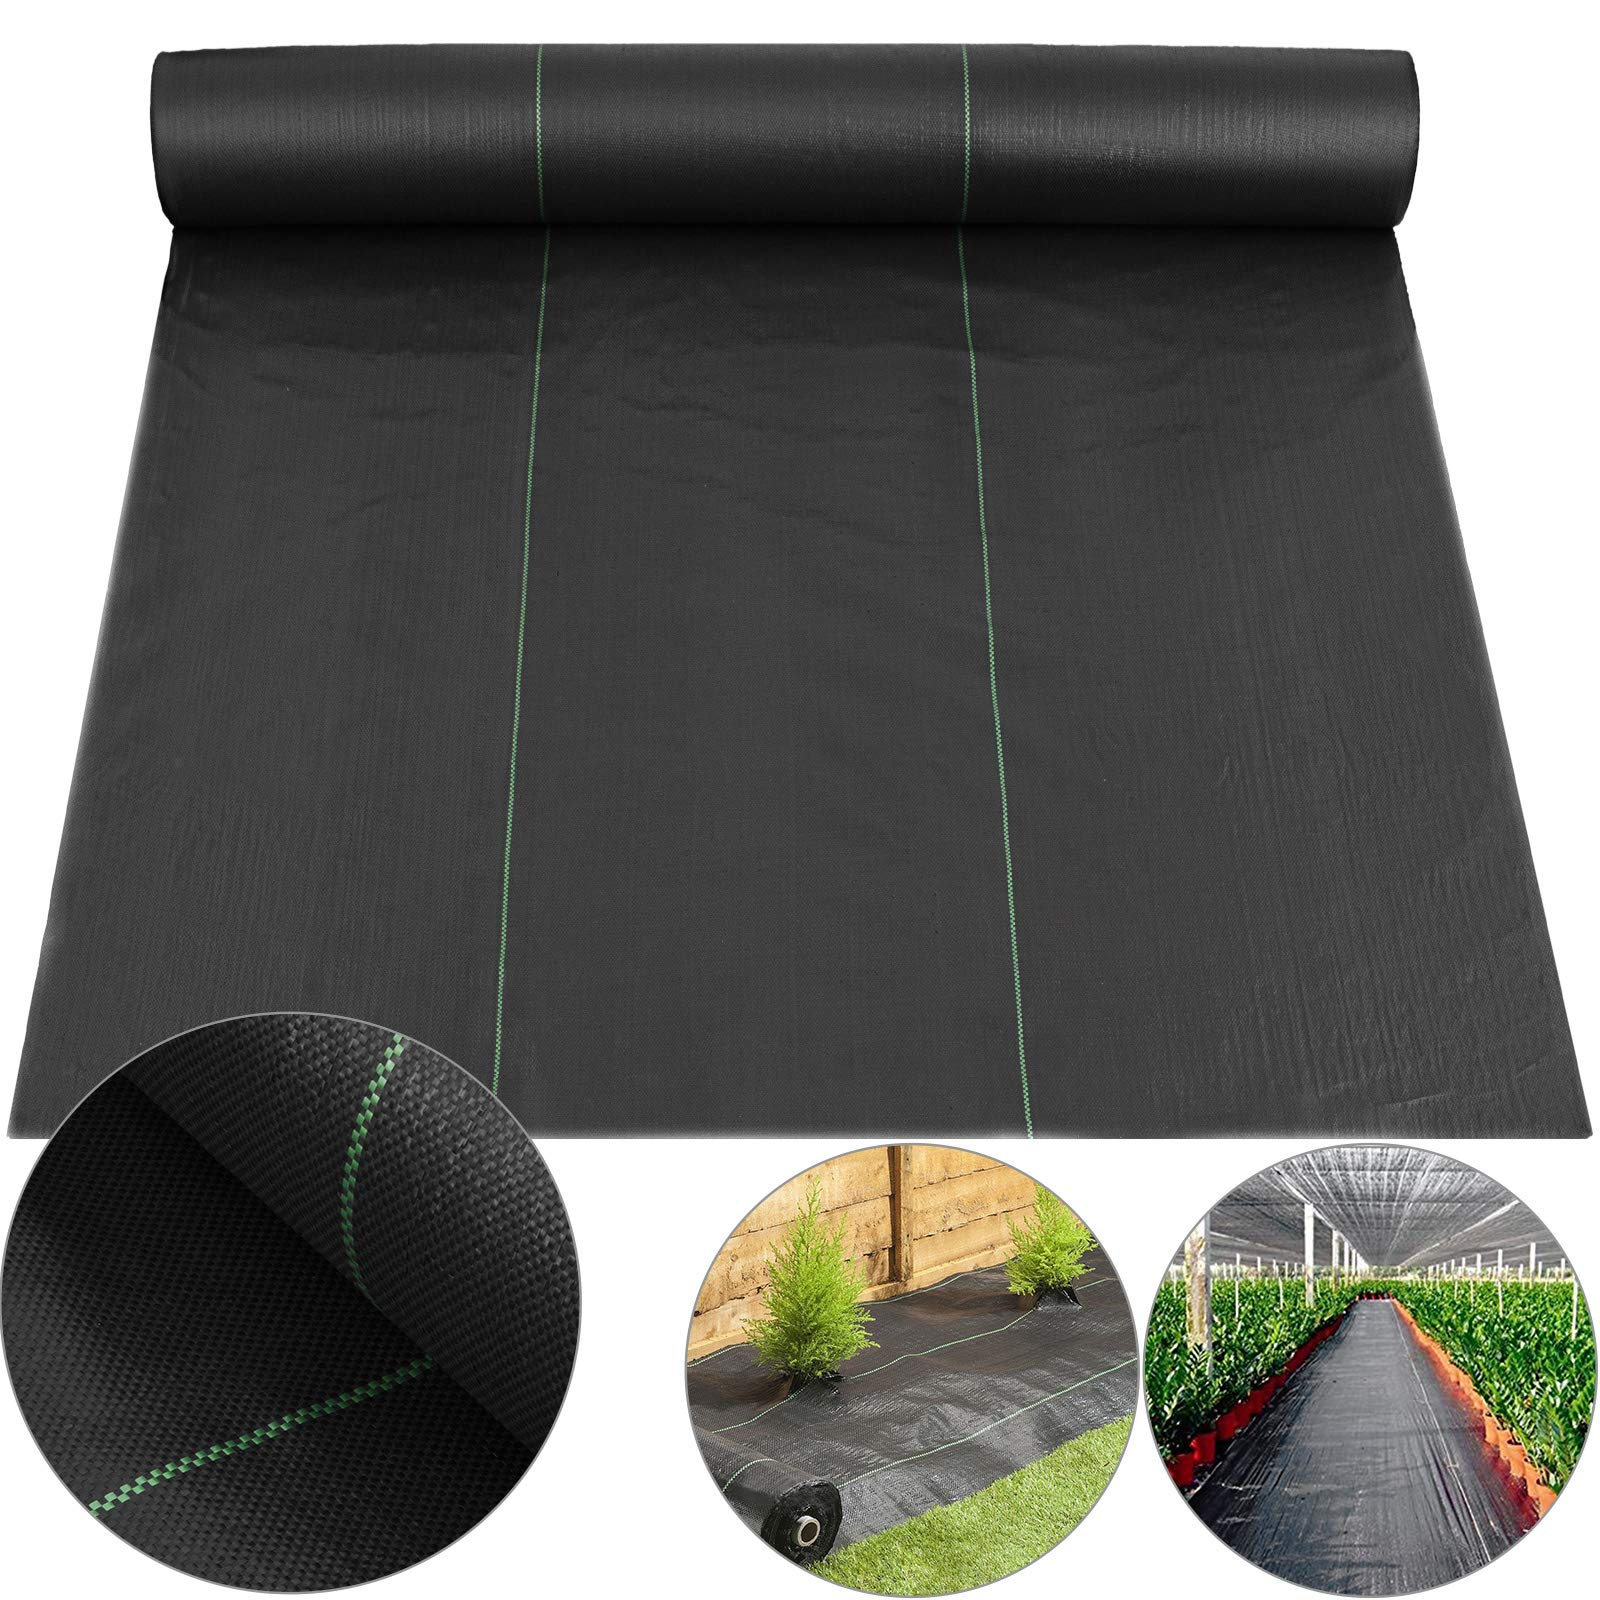 Happybuy Landscape Fabric 6.5ft x 300ft 3oz Garden Weed Barrier Heavy Duty Polypropylene Black Ground Cover Weed Barrier for Soil Erosion Control UV Stabilized and Weed Reduce